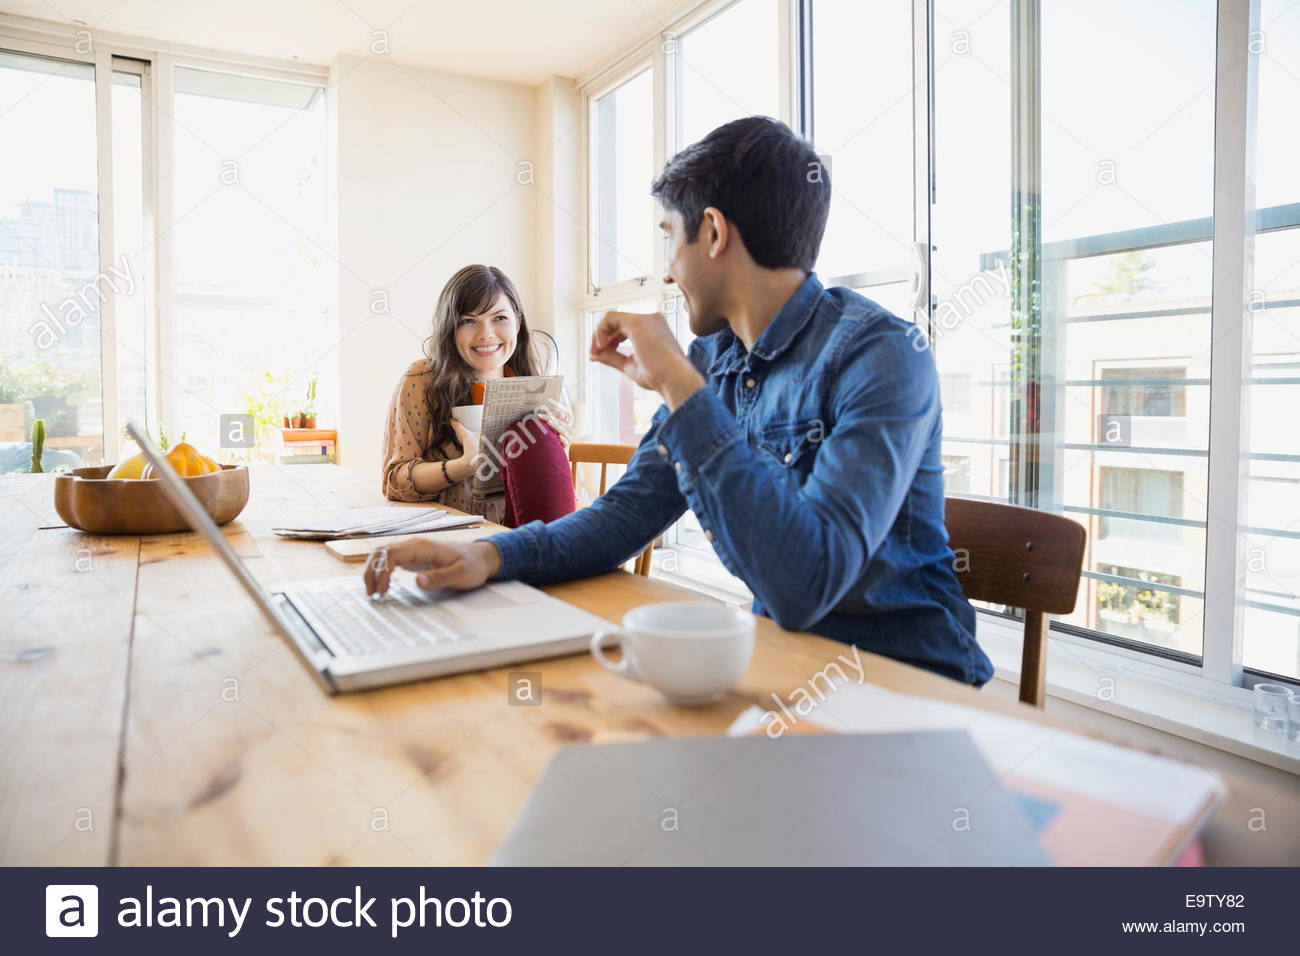 Couple reading and using laptop at table Photo Stock